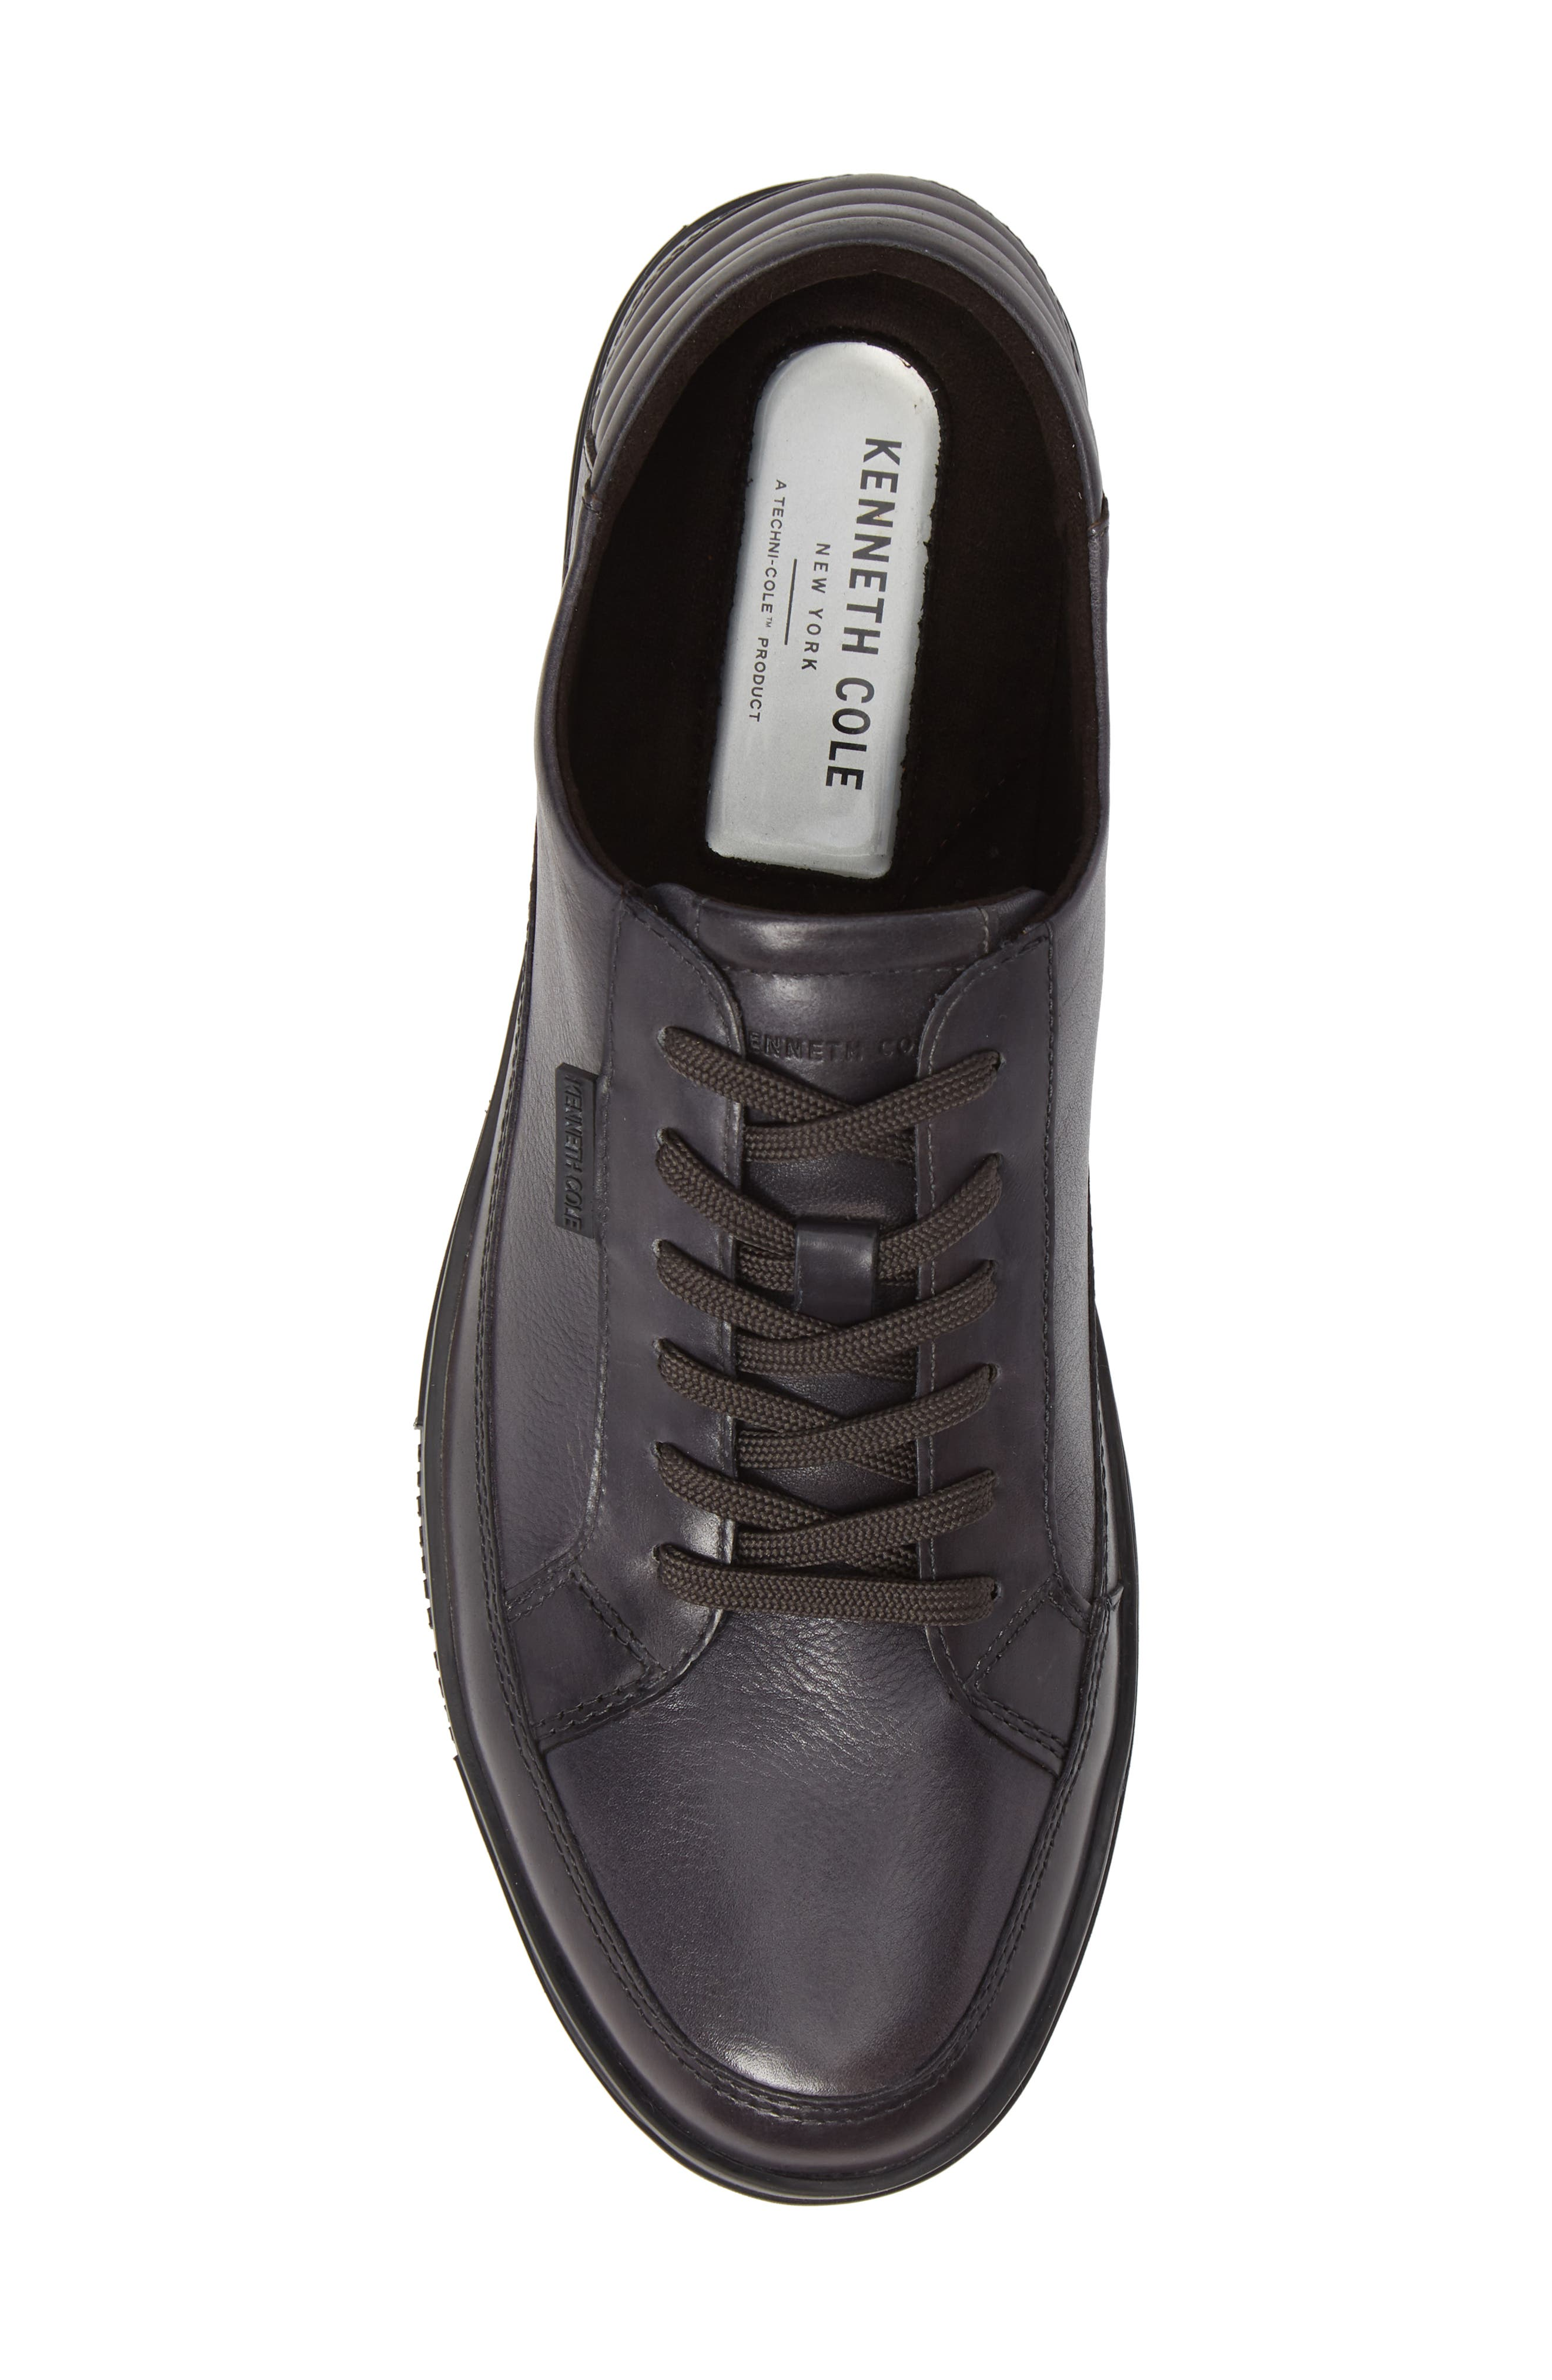 KENNETH COLE NEW YORK, Brand Stand Low Top Sneaker, Alternate thumbnail 5, color, GREY TUMBLED LEATHER/ LEATHER